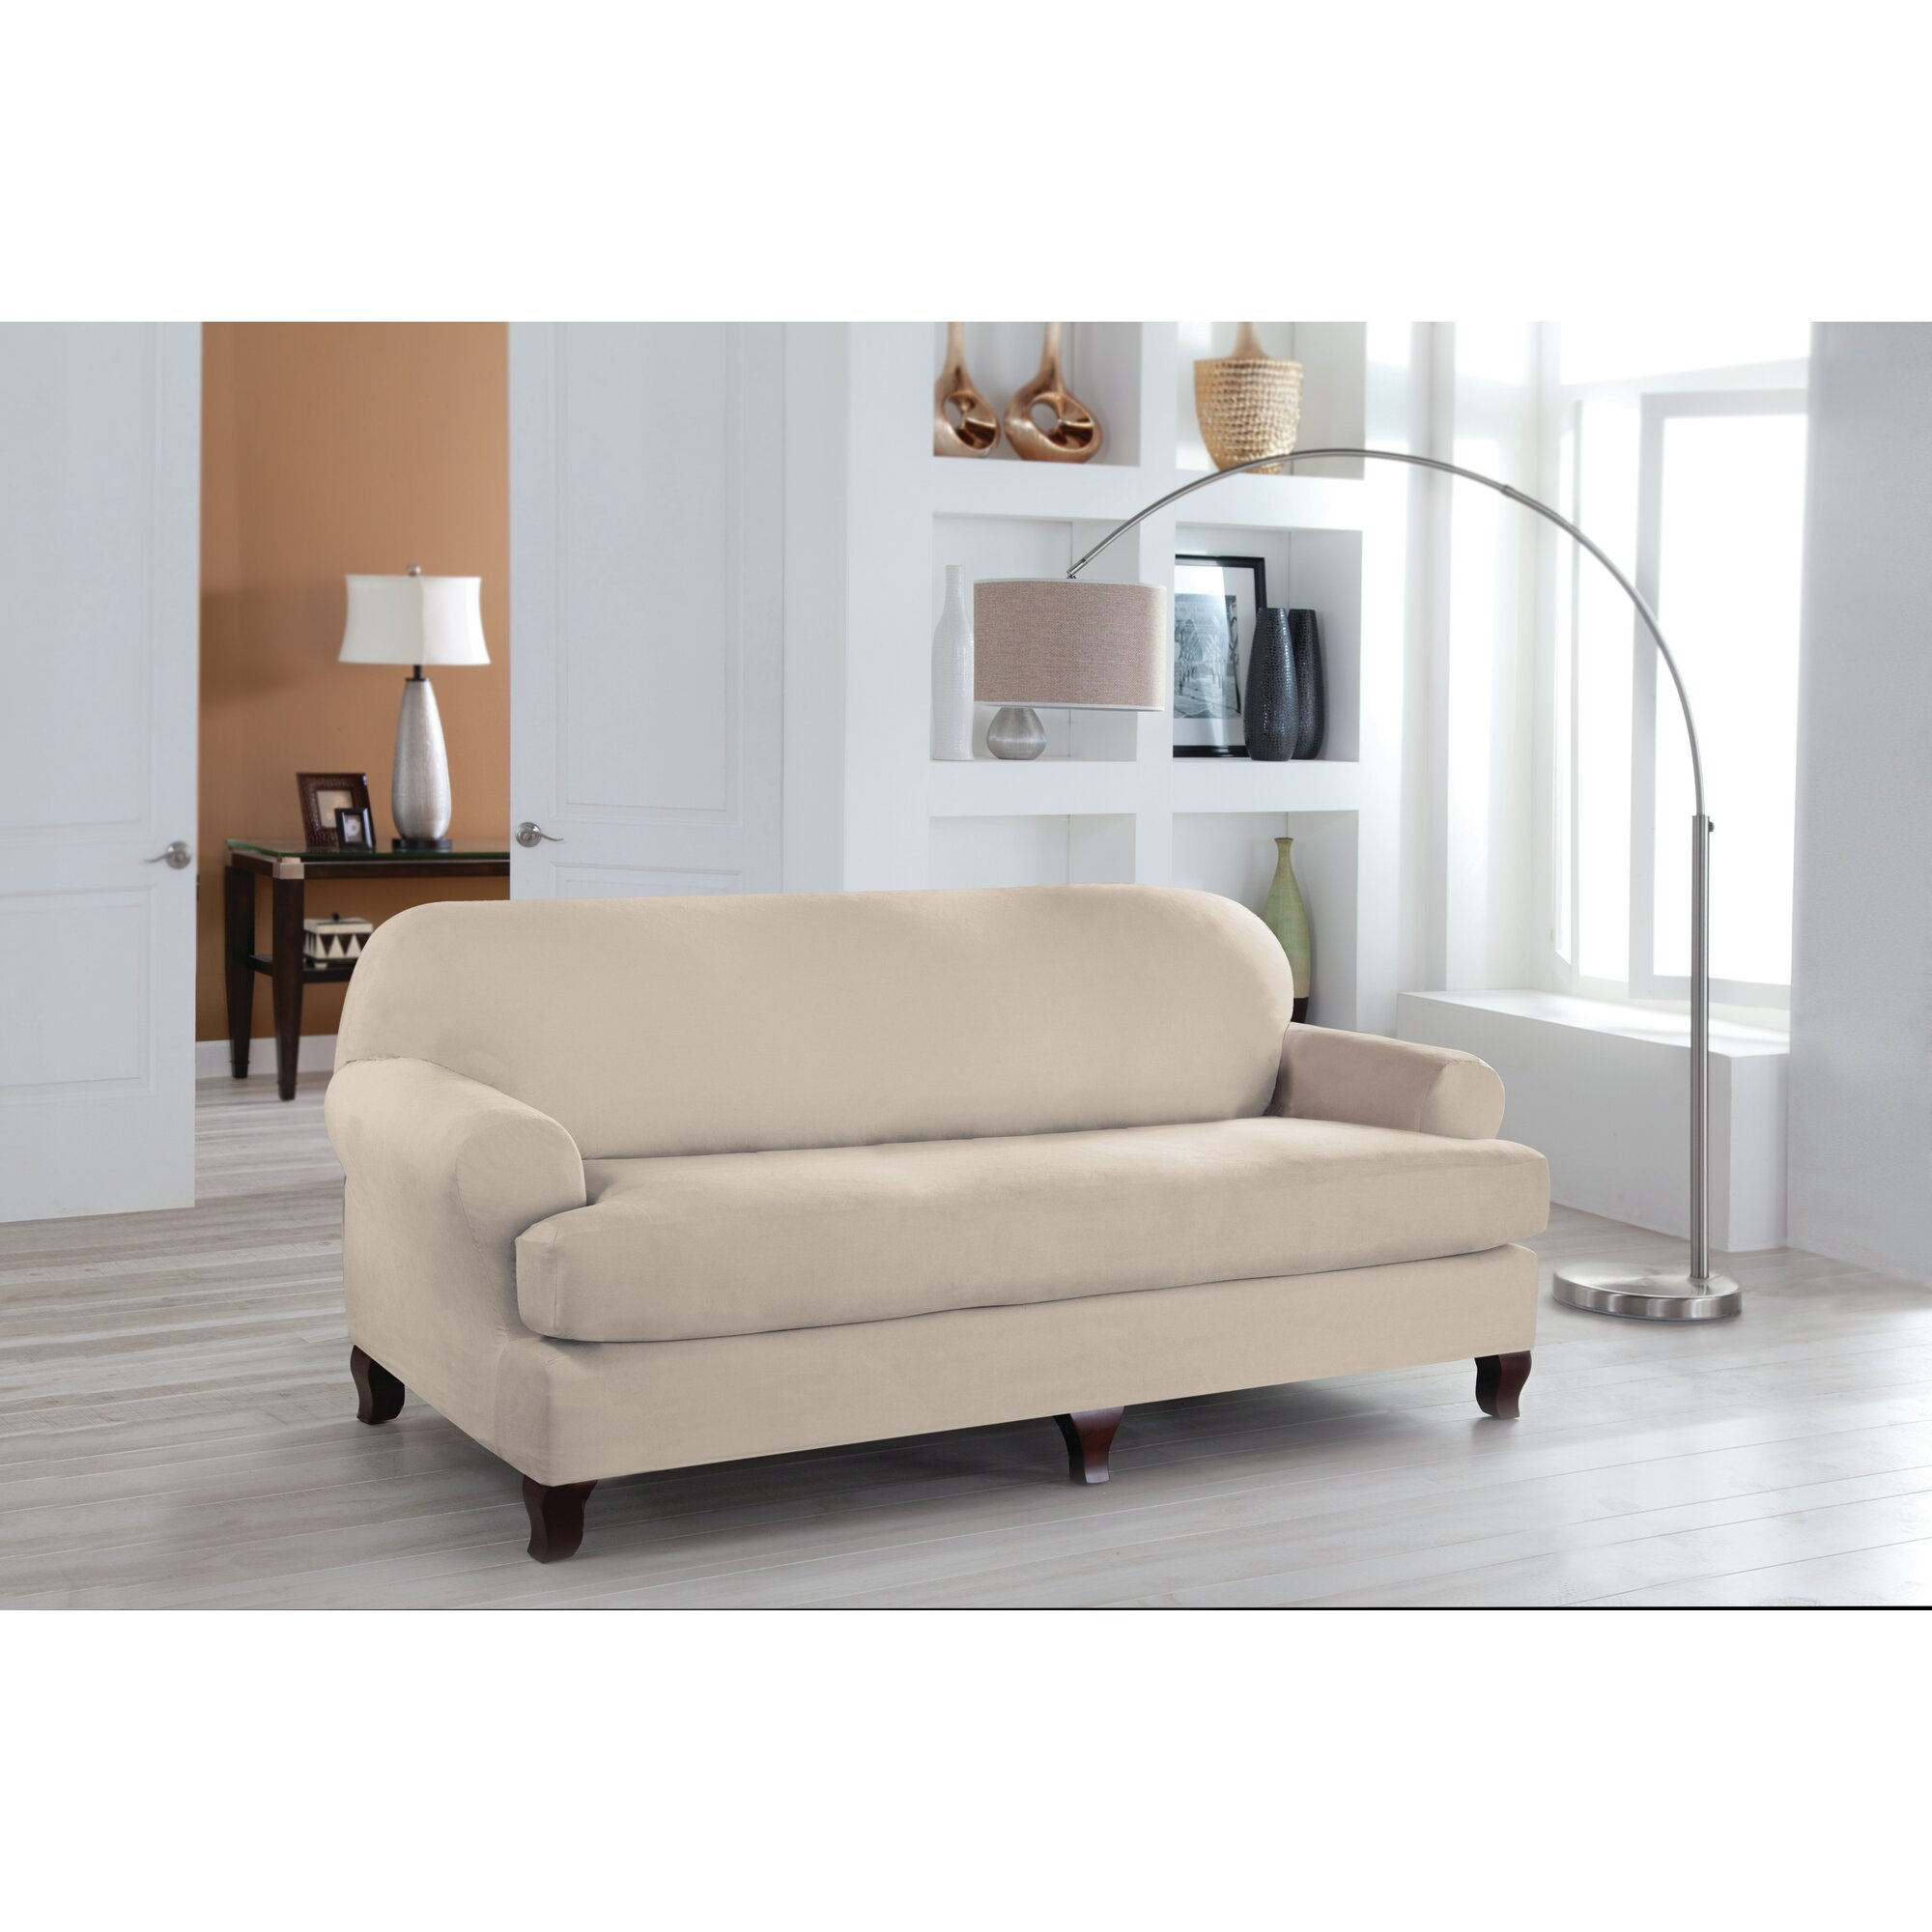 Designer Sofa Slipcovers Sofa Model Ideas